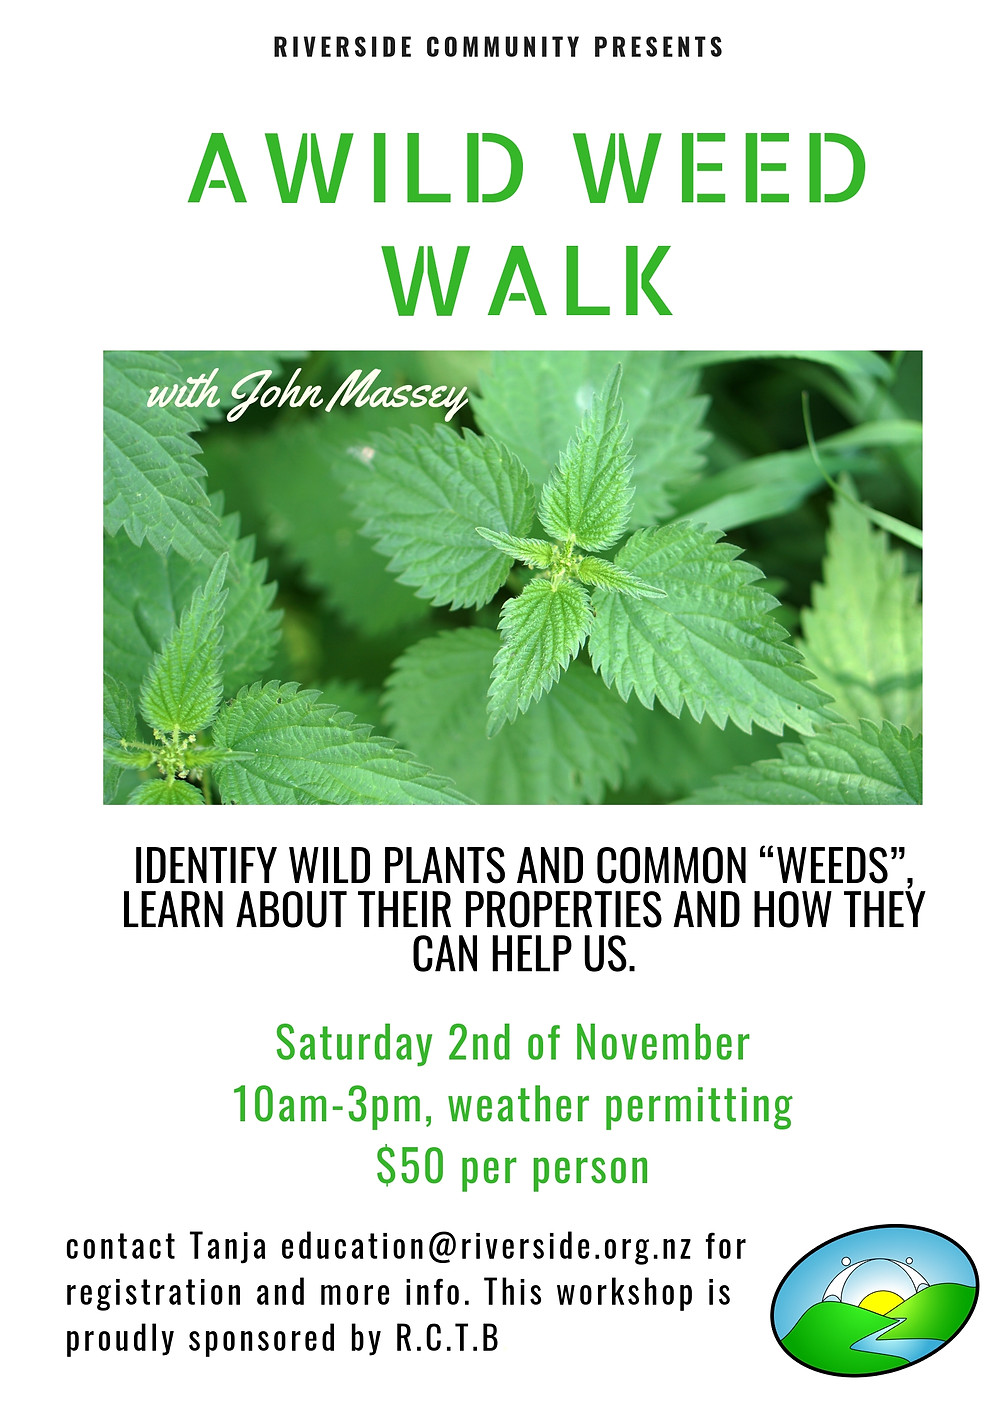 John Massey Wild Weed Walk at Riverside